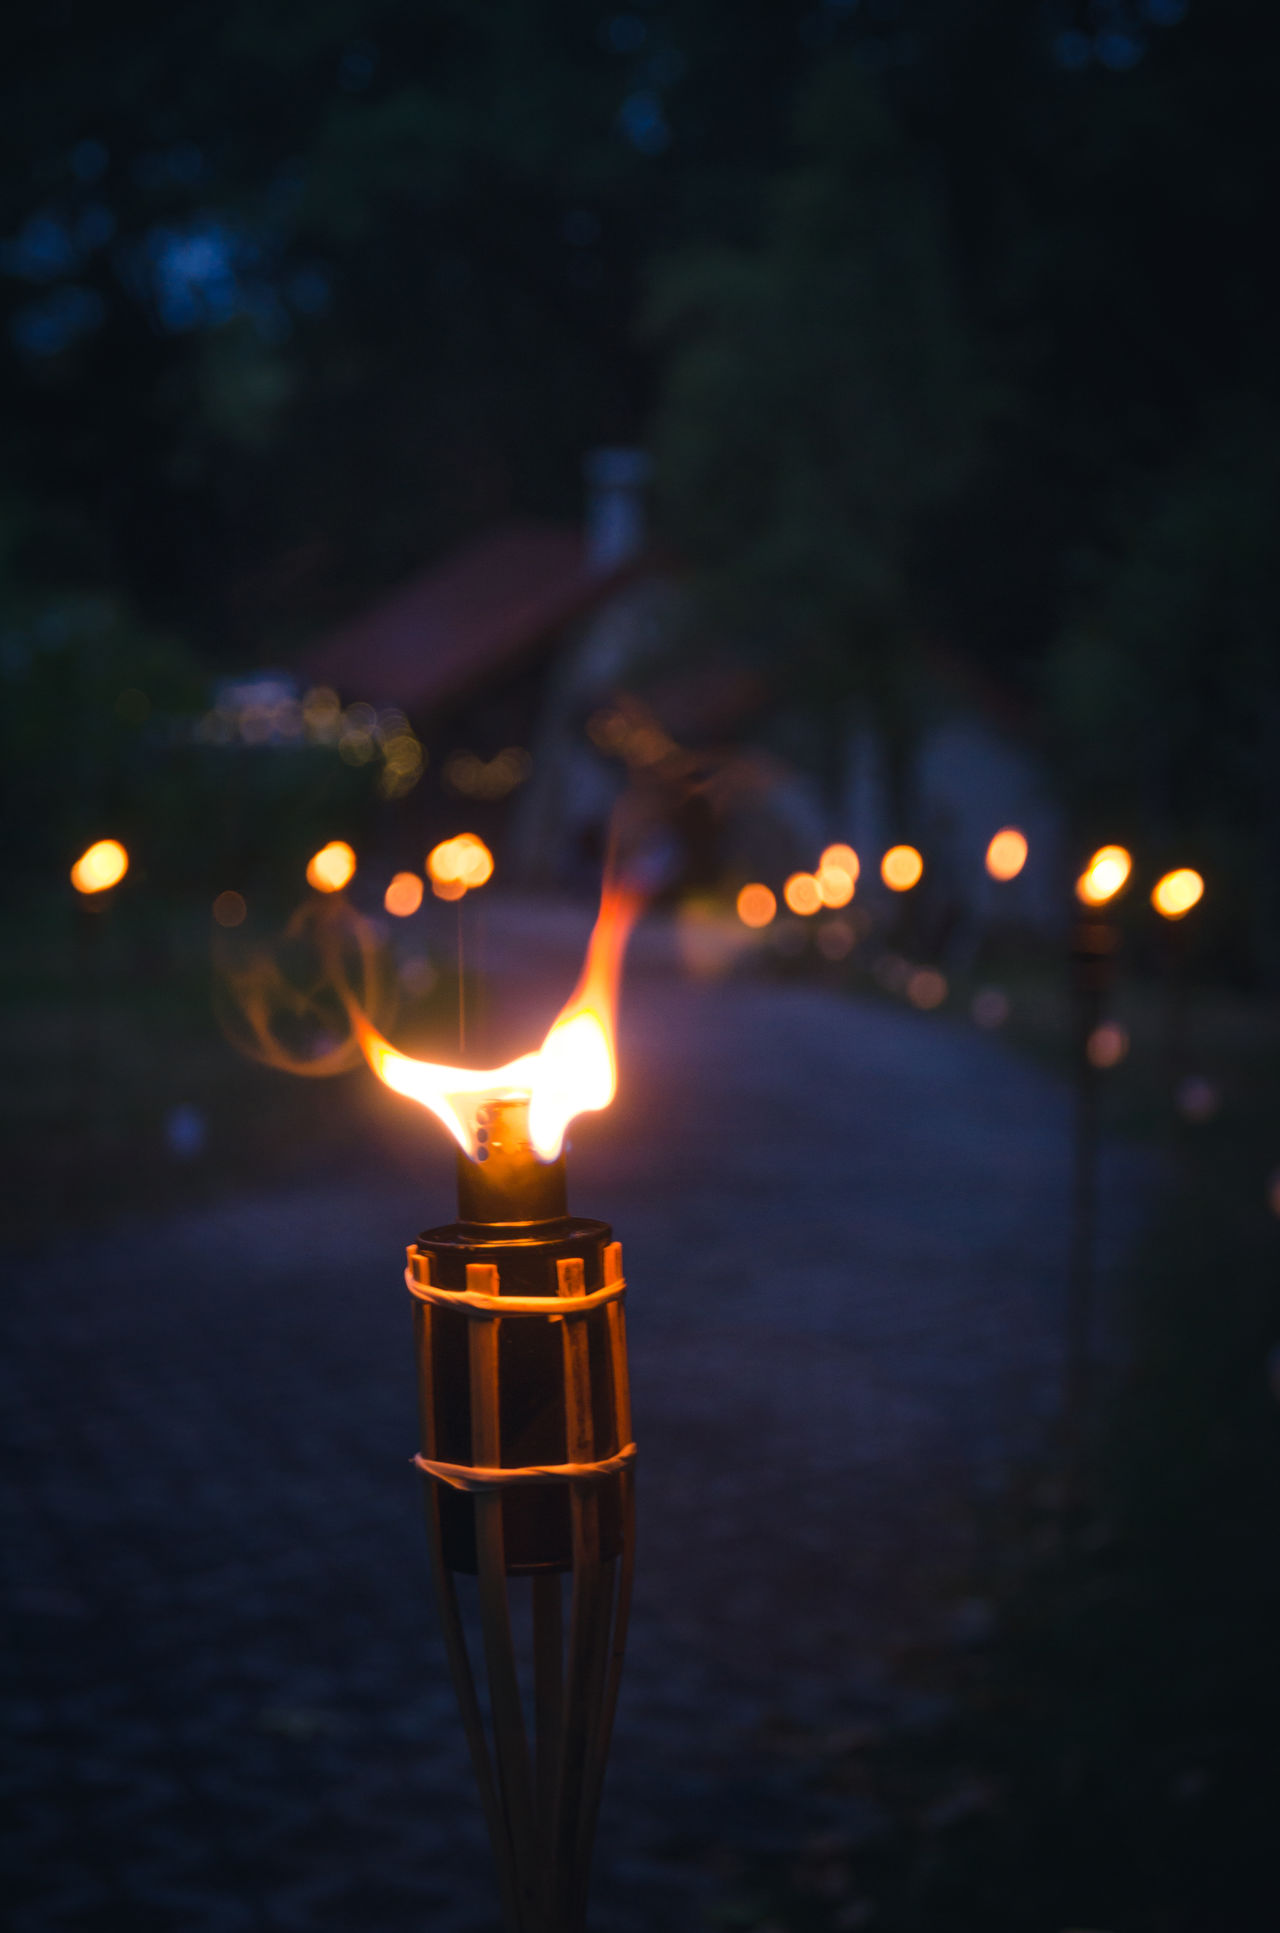 A single torch burning in the wind. Burning Candle Close-up Dark Diya - Oil Lamp Evening Fire Flame Flare Flarelight Garden Party Glowing Heat - Temperature Igniting Illuminated Nature Night No People Oil Lamp Out Of Focus Background Outdoor Location Outdoors Pathway Torch Torchlight